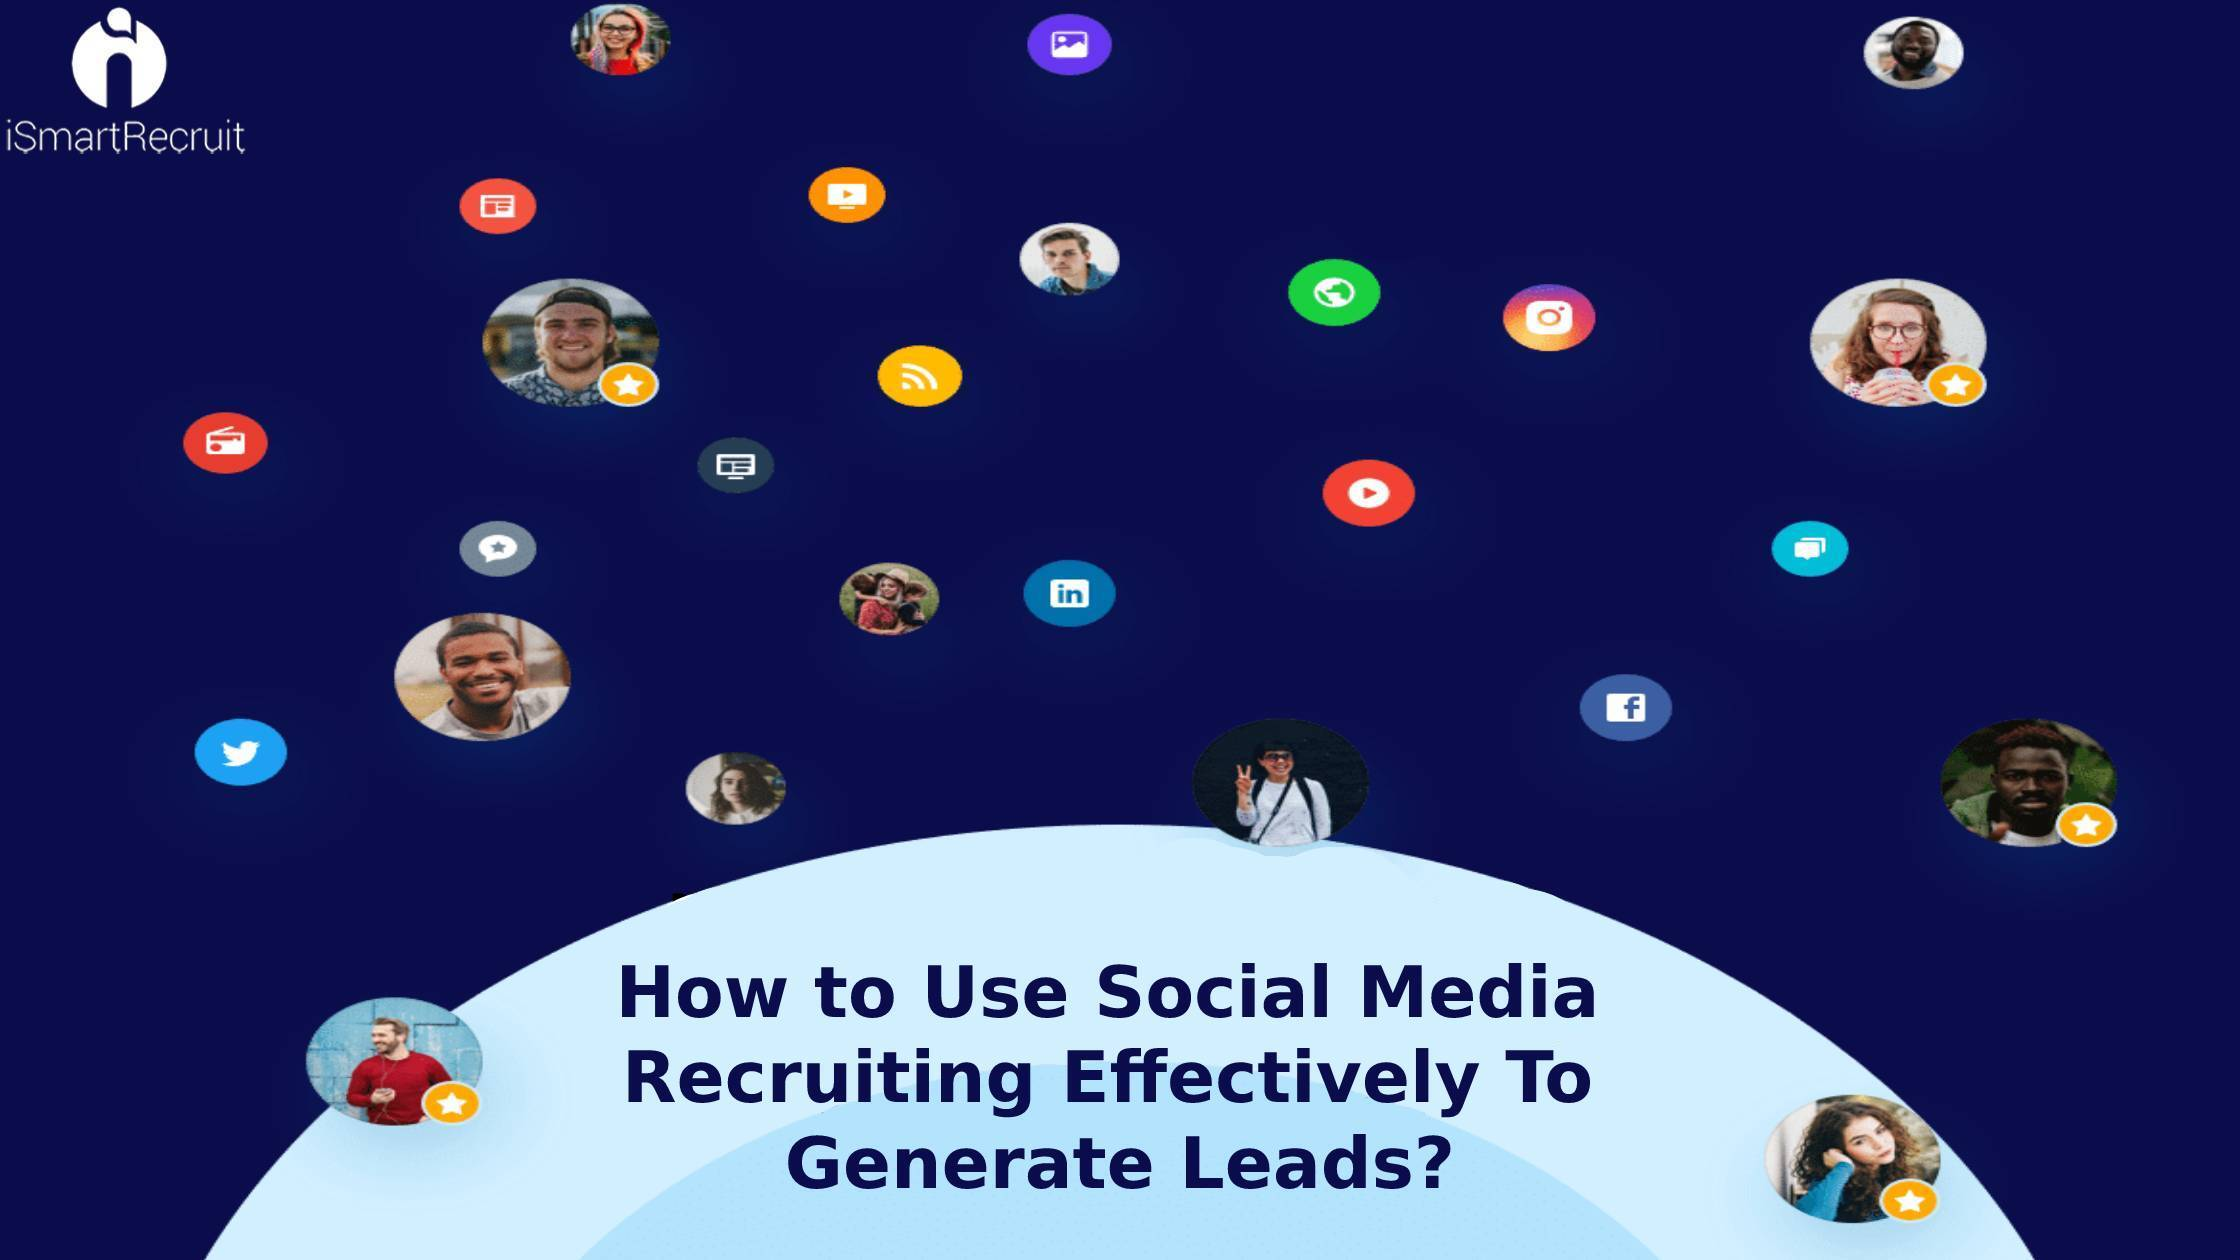 How To Use Social Media Recruiting Effectively To Generate Leads?